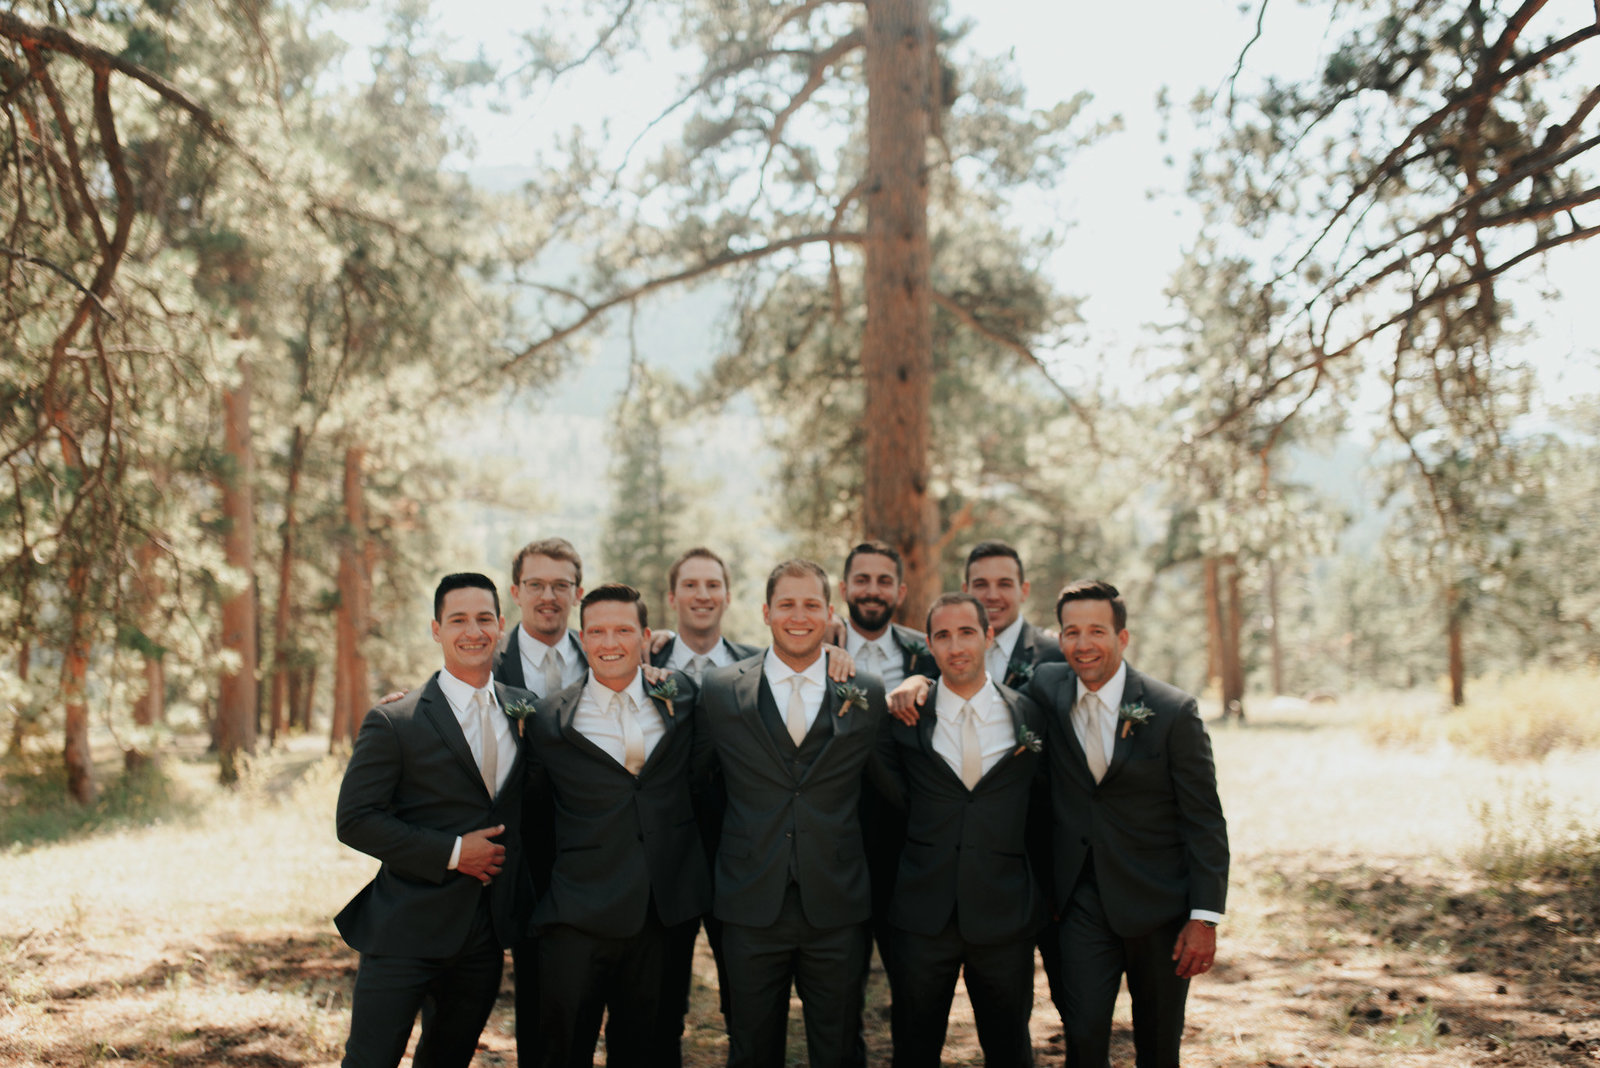 denver-wedding-photography-38